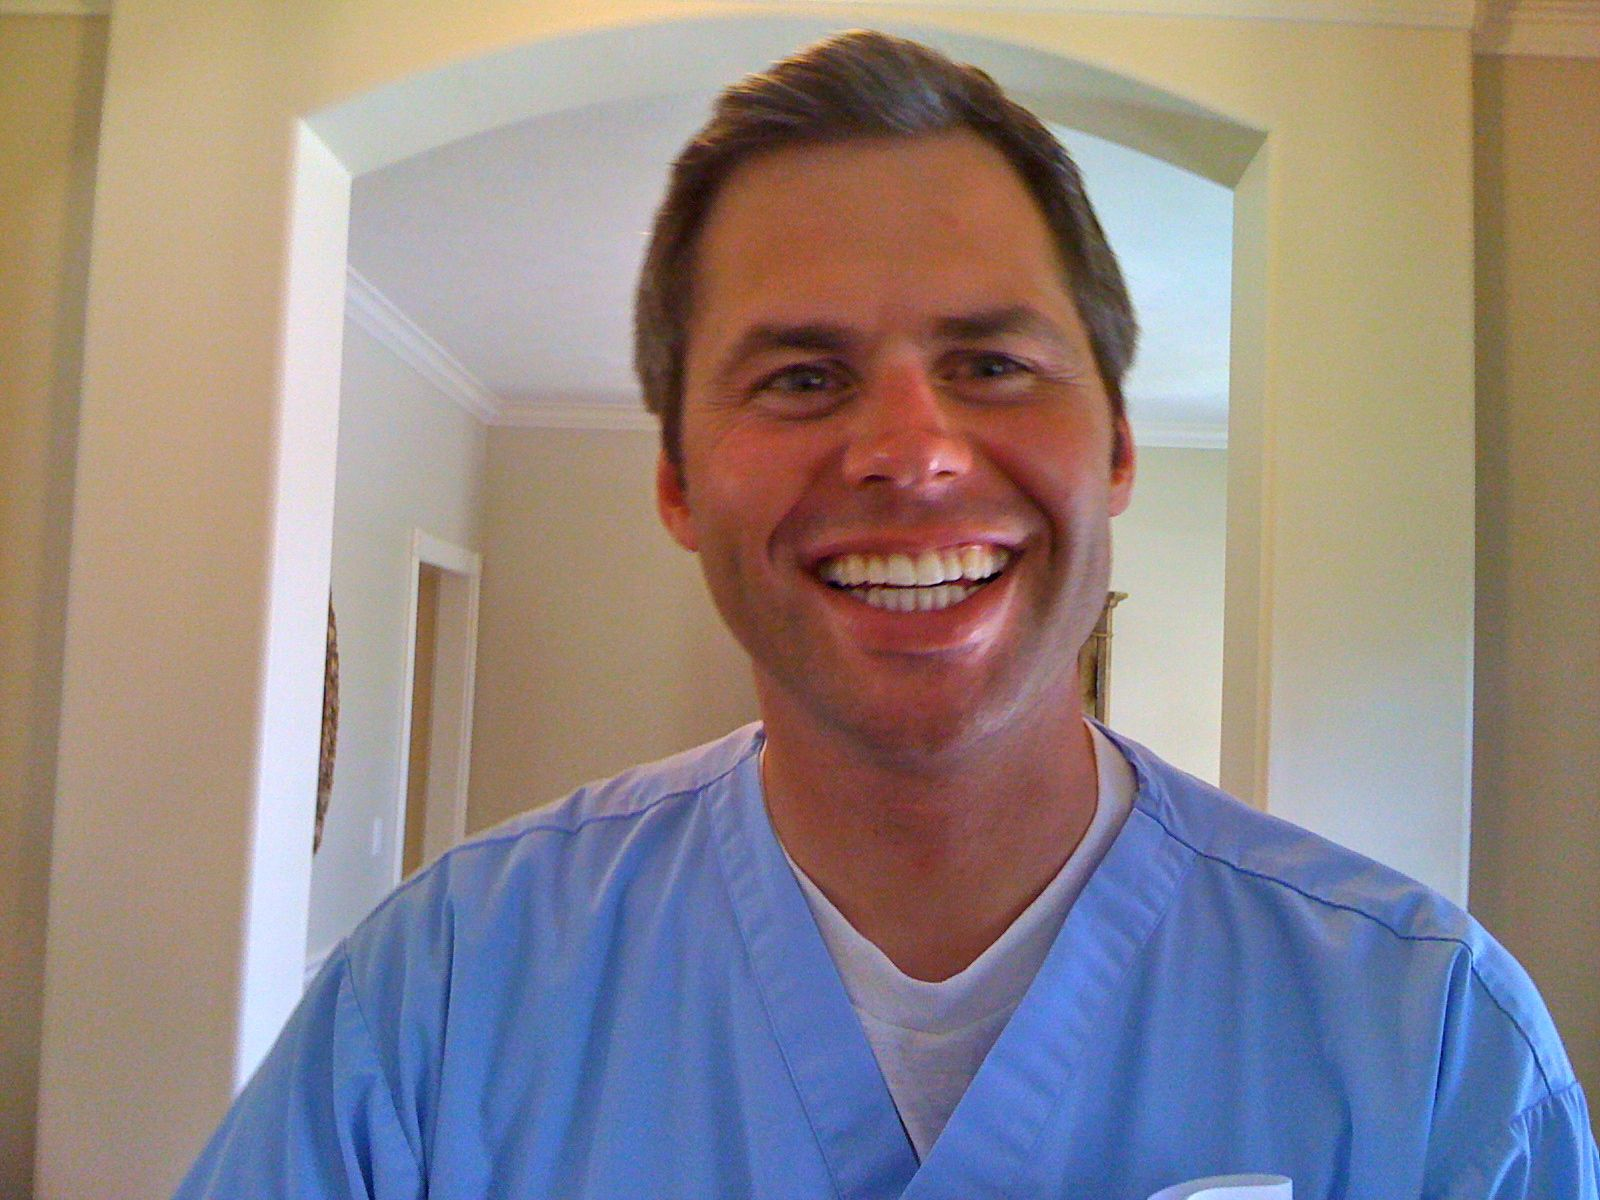 Dr. Steve Osmond (Wayne's son) is a dentist.